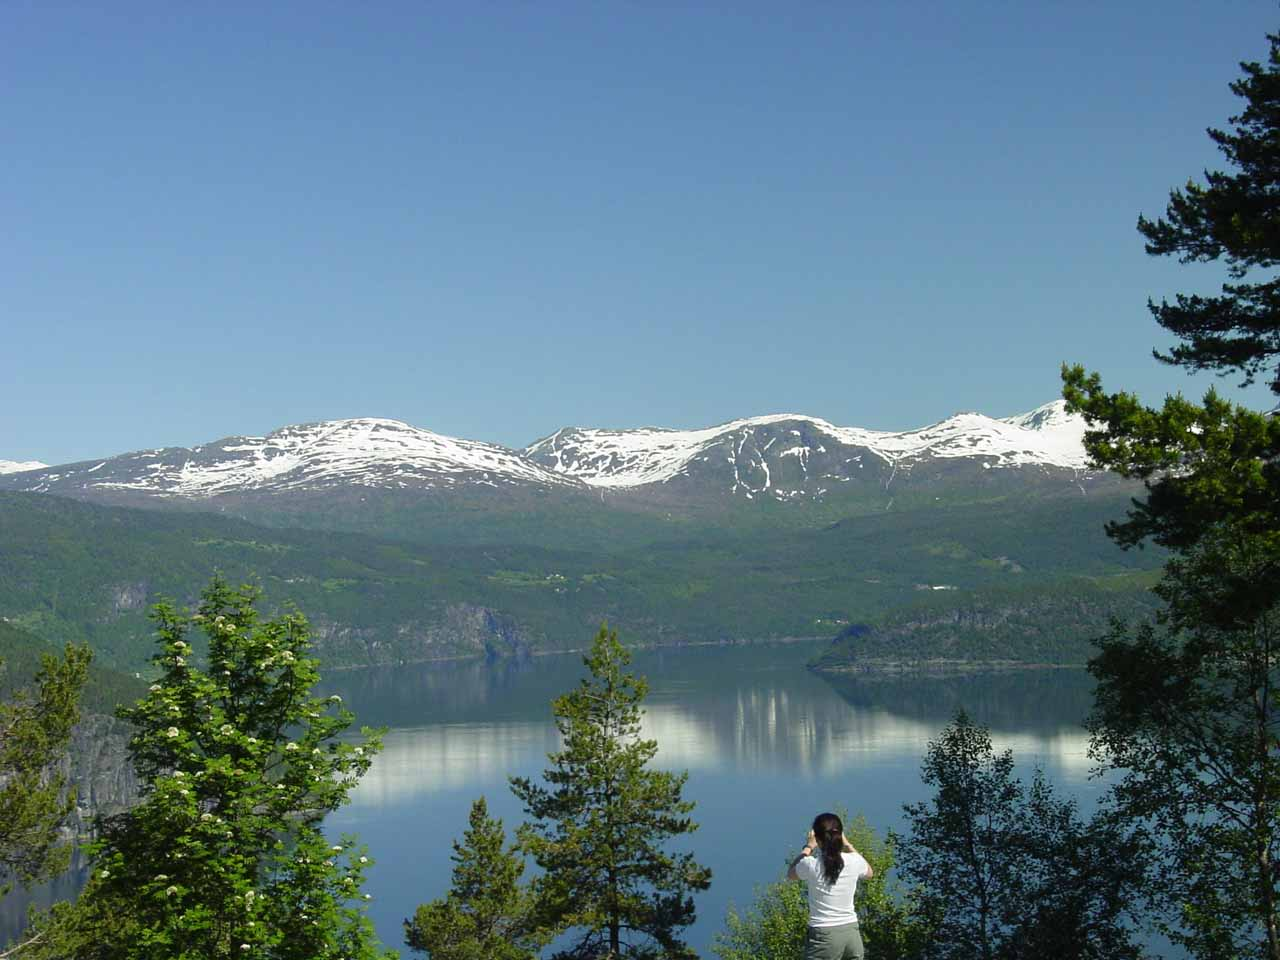 After visiting Myklebustdalen, we continued driving north of Byrkjelo where we got this view of Innviksfjorden (part of Nordfjorden)